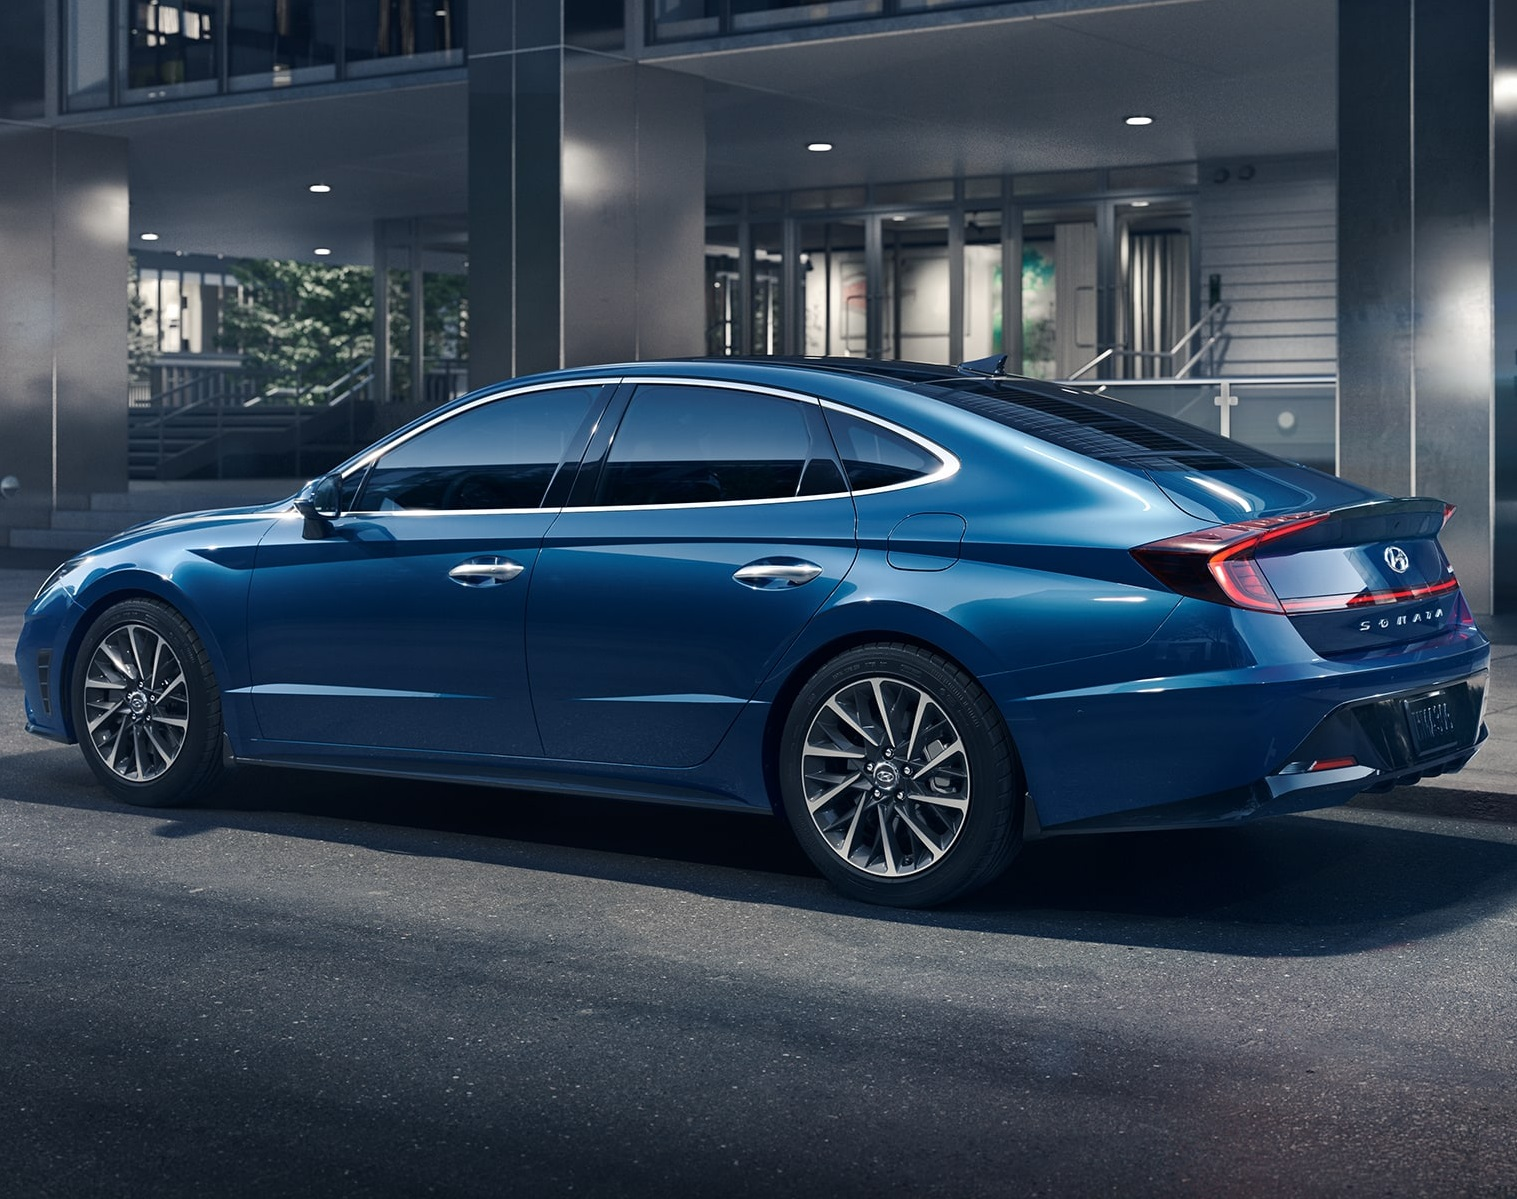 Lease Buy-Out in North Kingstown RI - 2020 Hyundai Sonata